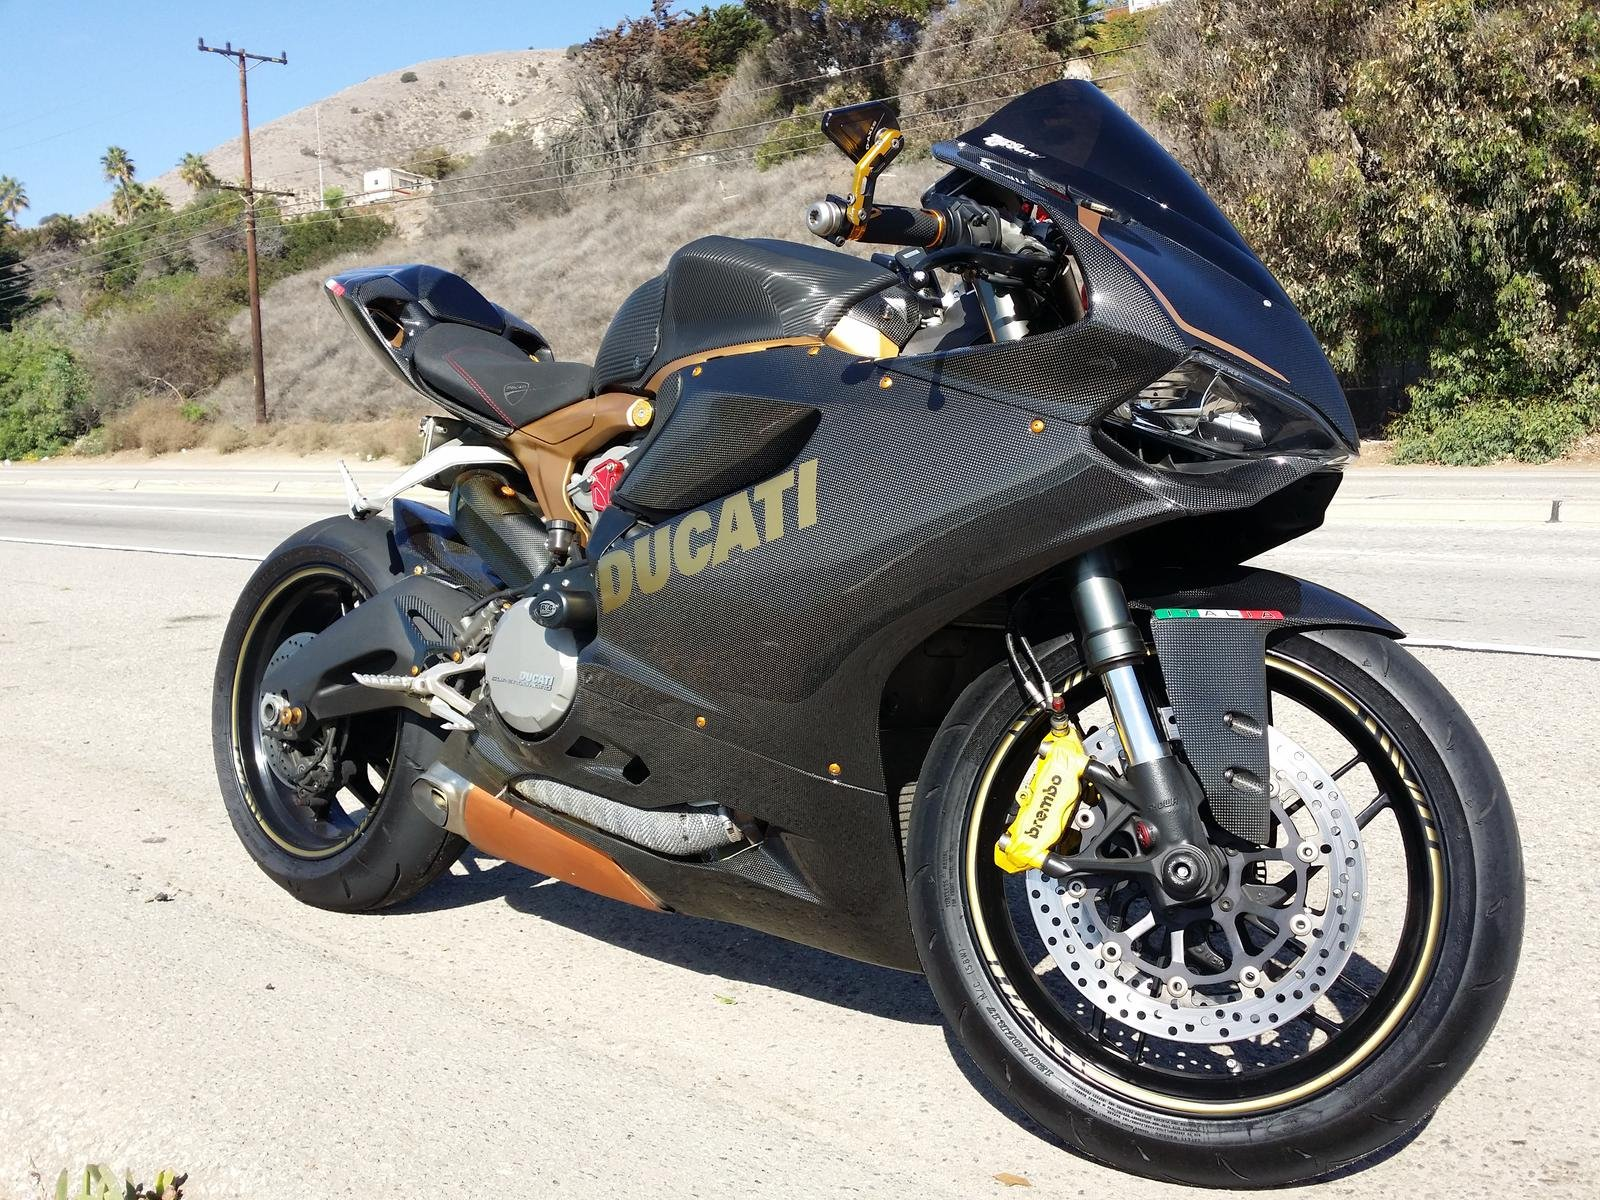 2014 ducati panigale 899 carbon 16500 los angeles. Black Bedroom Furniture Sets. Home Design Ideas